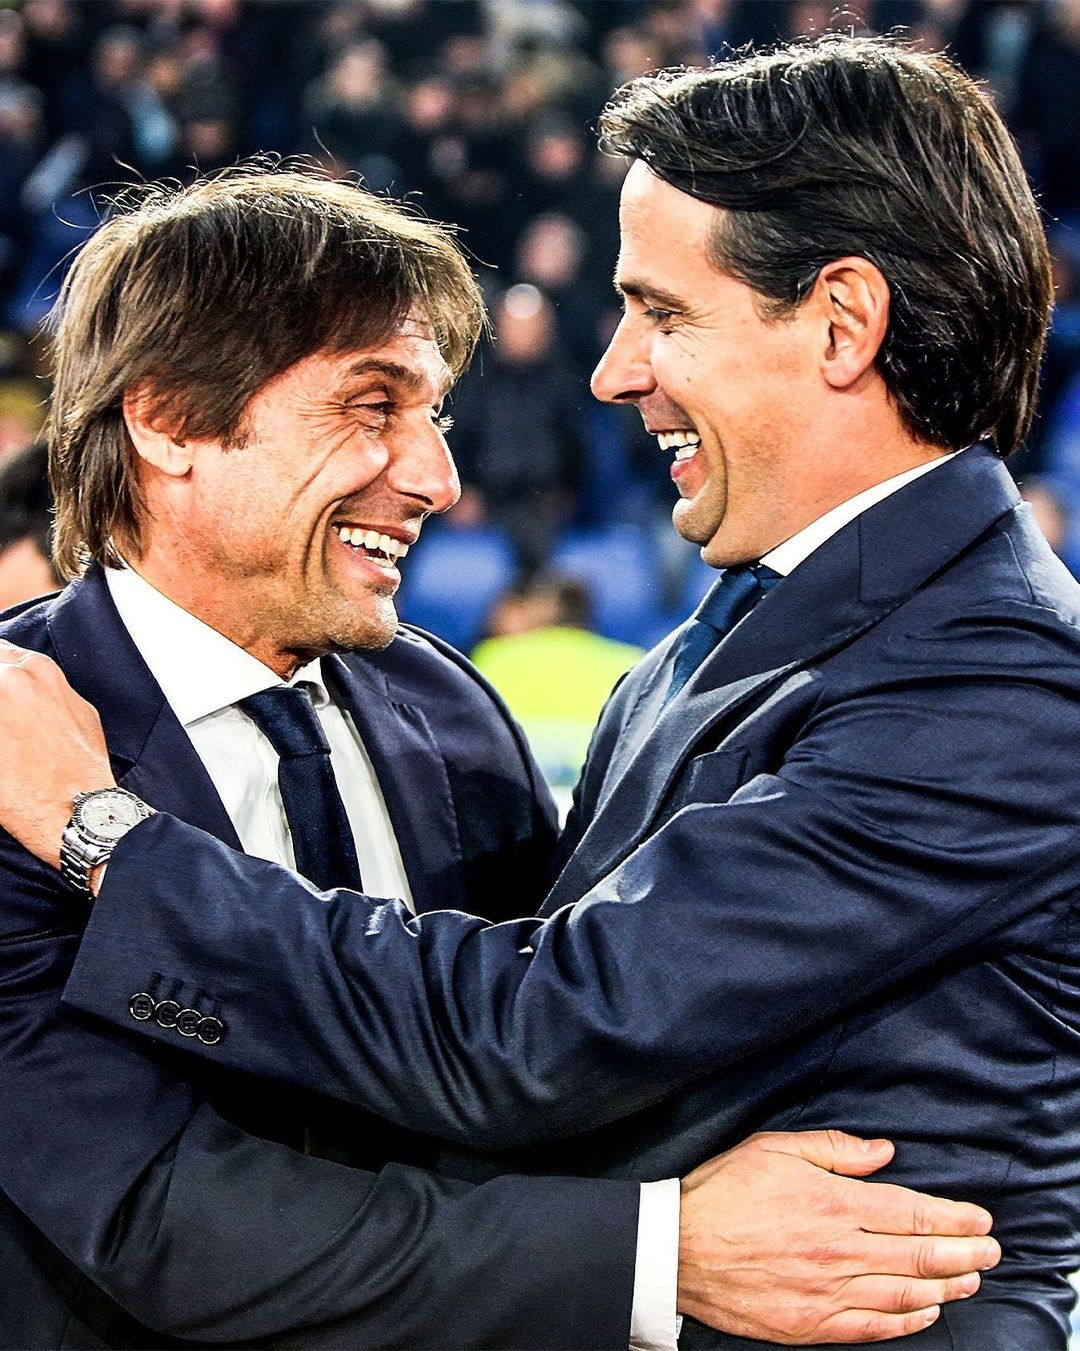 JUST IN: Simone Inzaghi will be appointed as the new Inter manager